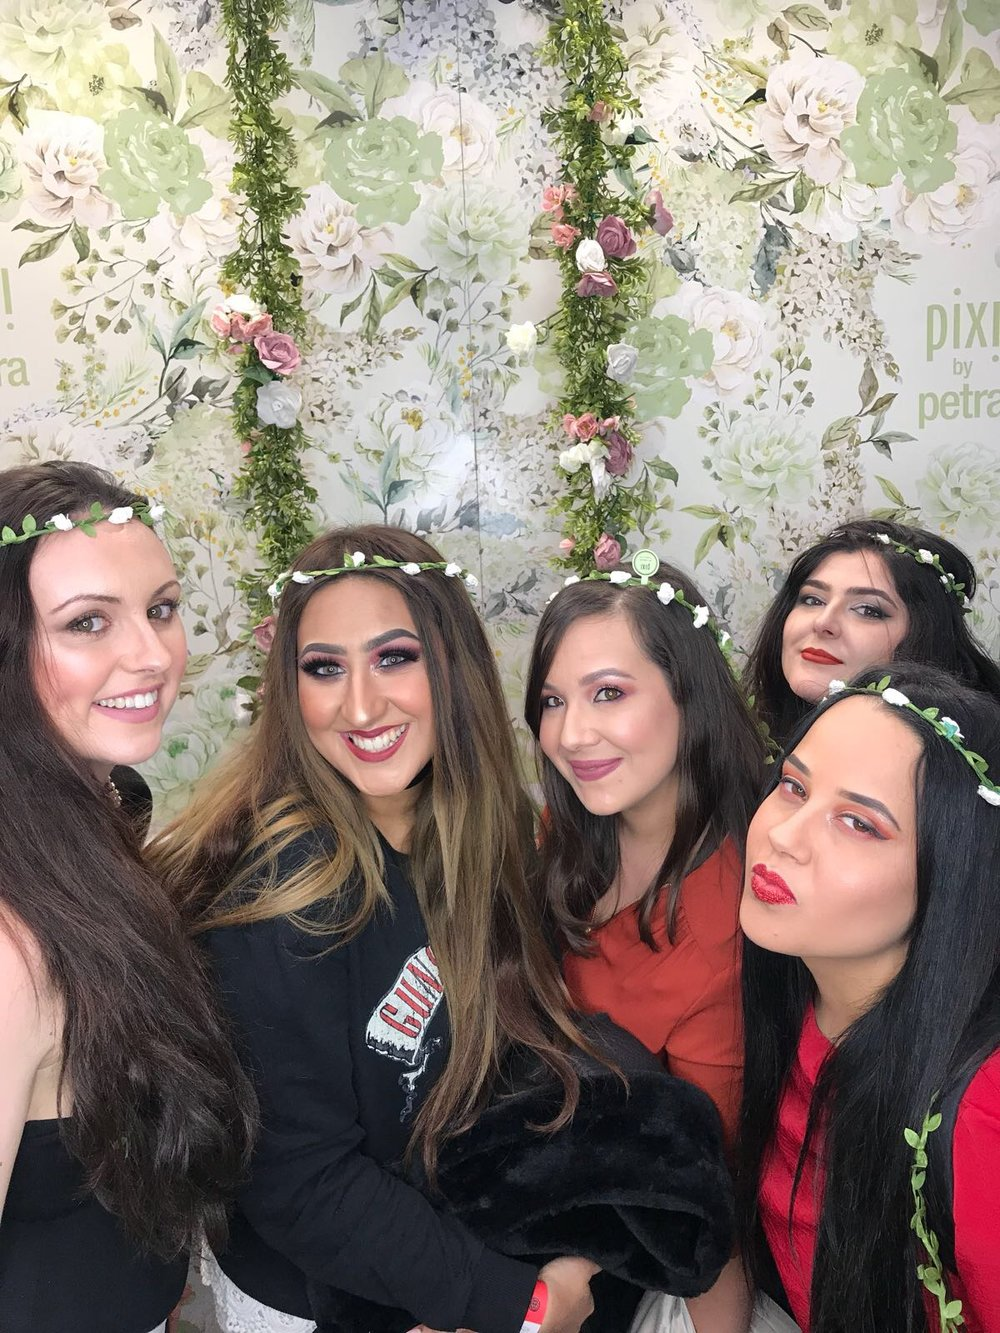 Me and the #GIRLGANG at the Pixi Beauty stall feauturing our cute little flower crowns. I can tell I was just about to blink- haha.